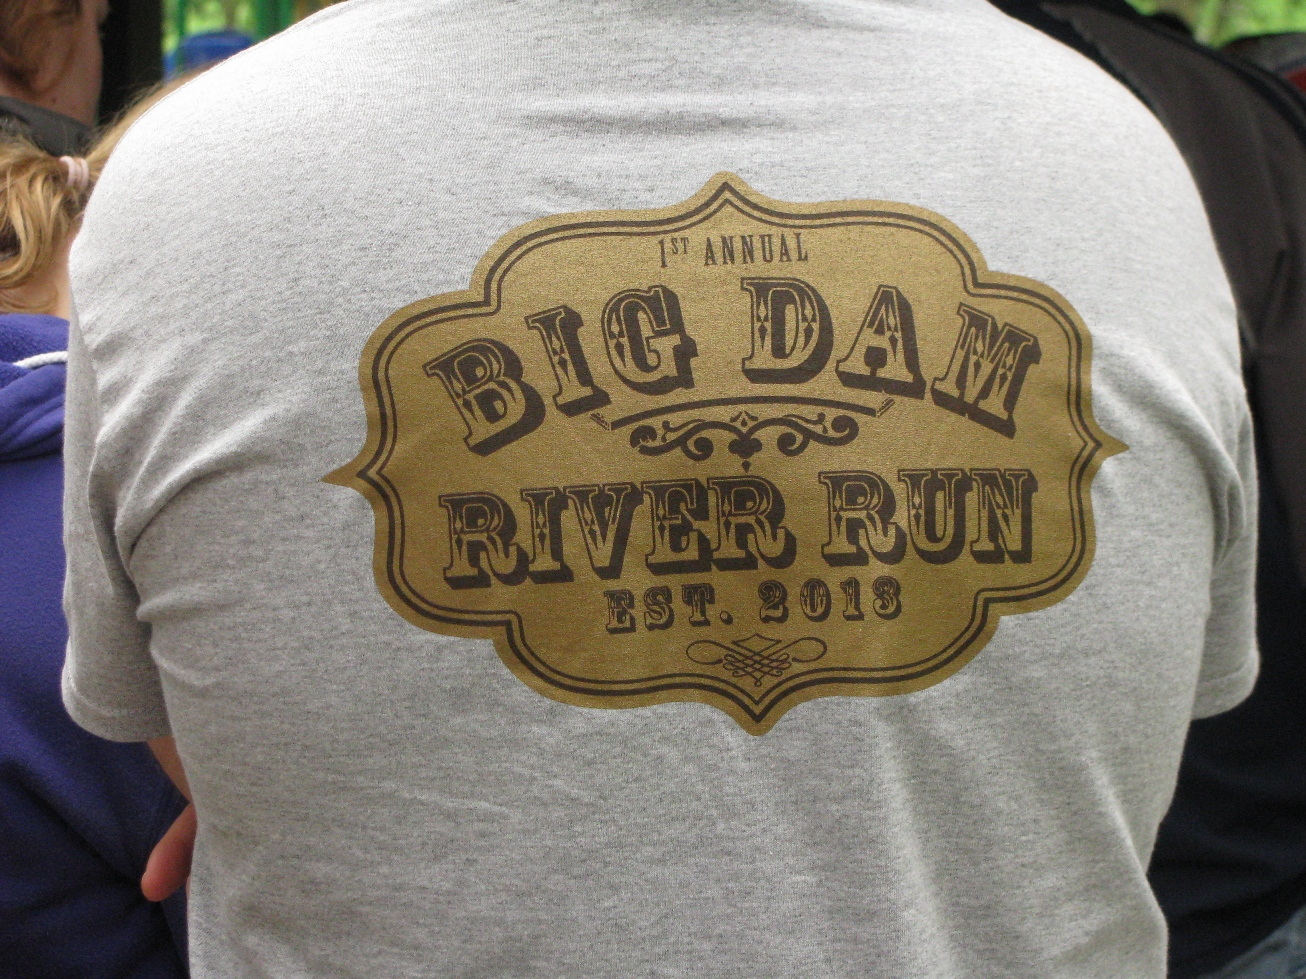 2013 Big Dam River Run